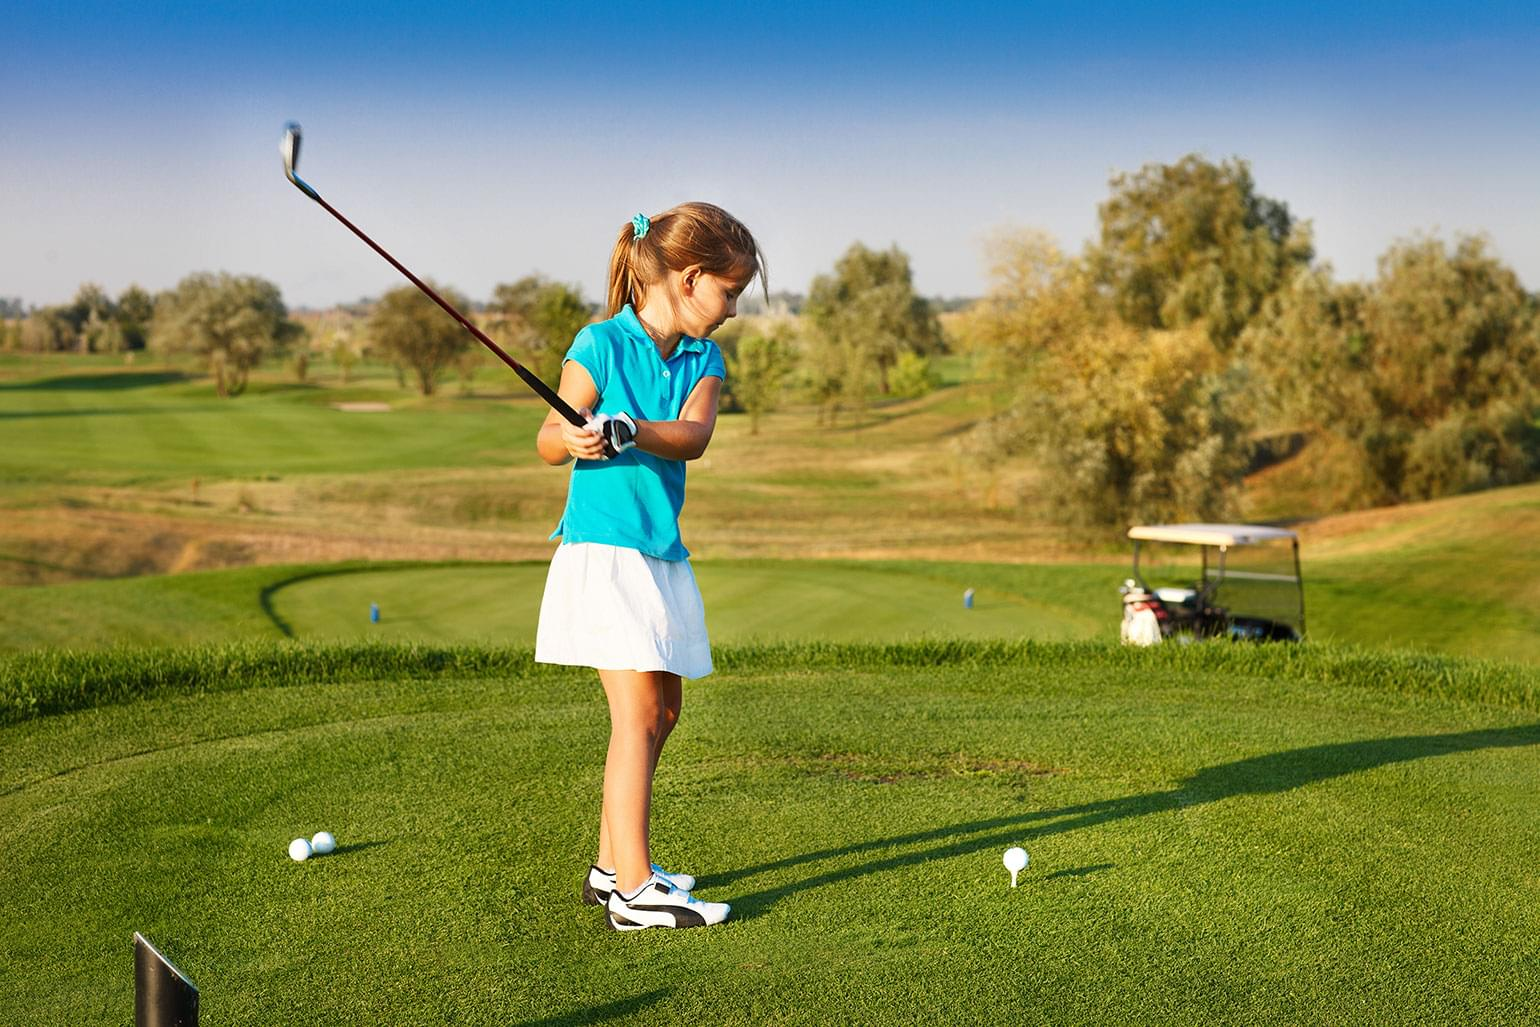 Young girl in skirt and blue golf shirt teeing off.